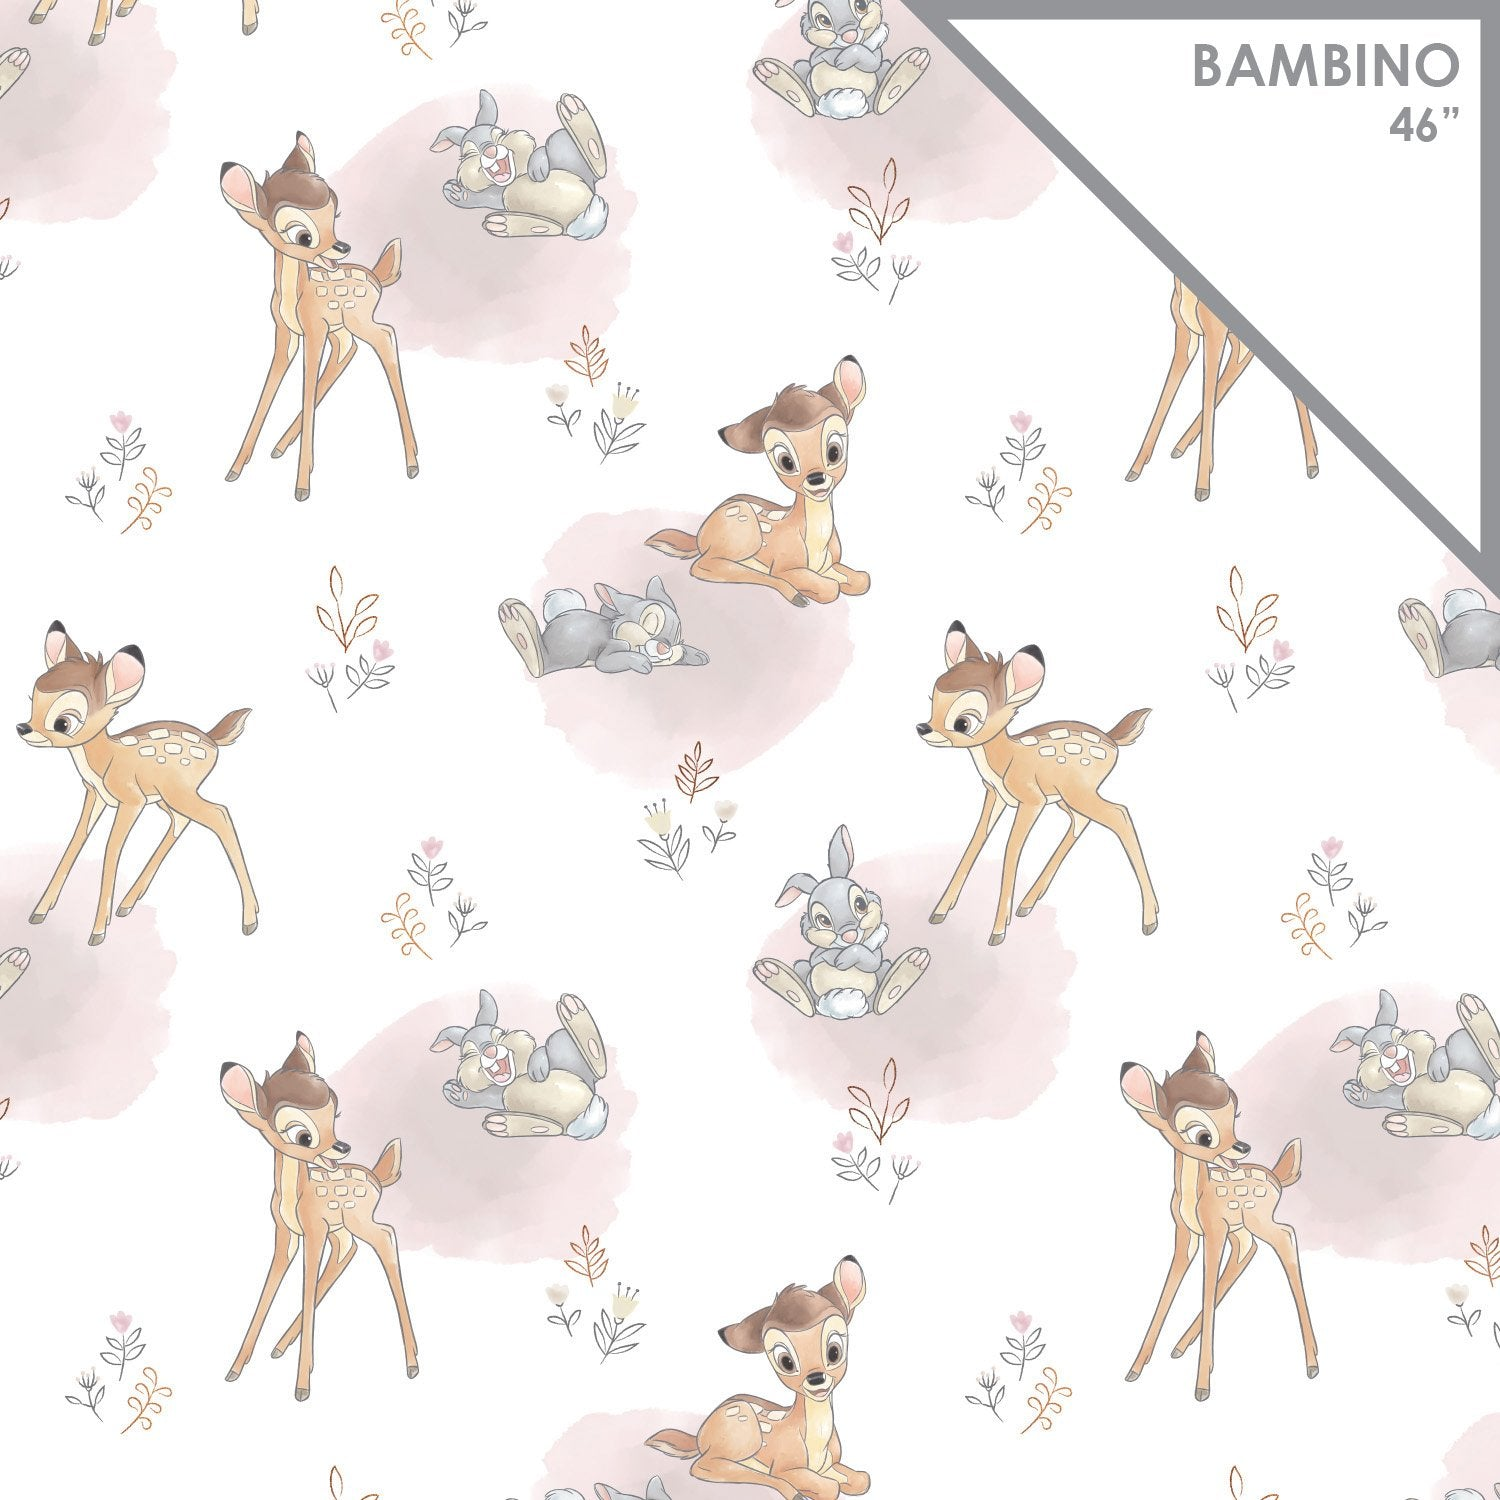 Licensed Swaddle Muslin - Bambi - Meadow Friends - White with metallic